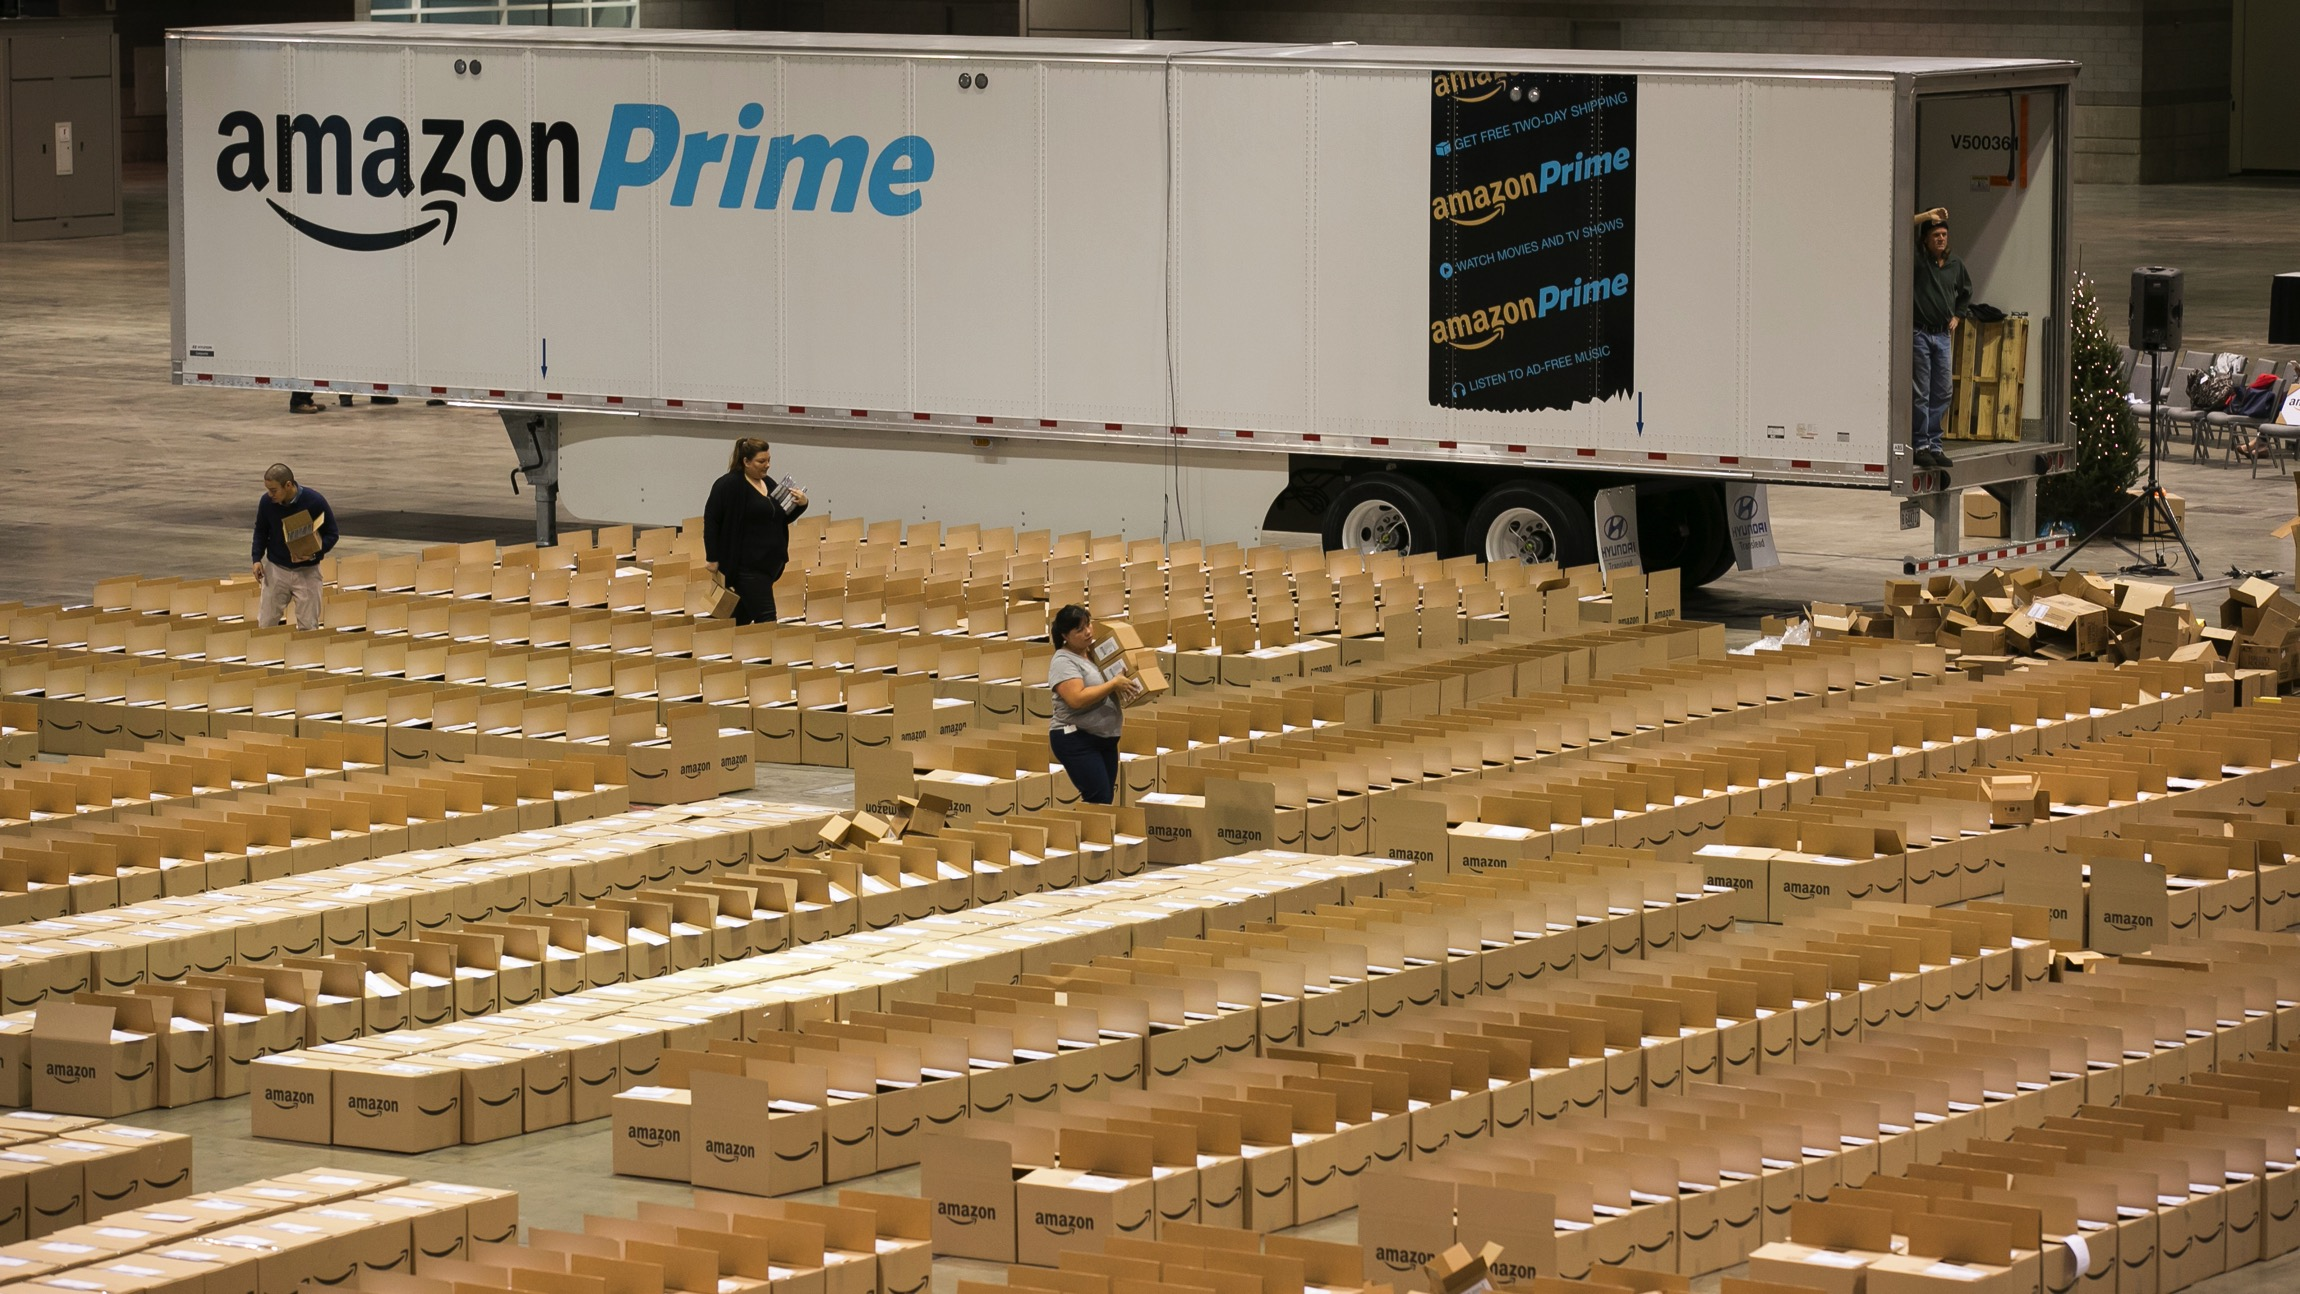 "At an event today in Chicago, Amazon employees from nearby fulfillment centers packed 2,000 care packages to send to soldiers abroad who are not able to come home for the holidays Friday, December 4, 2015. Since 2010, Amazon has shipped more than 12 million packages to APO and FPO addresses. The Amazon care packages for the troops included holiday chocolates and snacks alongside an Amazon Fire tablet. The care packages for soldiers headed off in an Amazon branded trailer—one of thousands that Amazon has started to roll-out to increase capacity in the supply chain. Amazon's Vice President of North America Operations Mike Roth said, ""I couldn't be more pleased that our very first Amazon trailer headed out on the road carrying such special packages—thousands of boxes filled with beloved holiday items and Amazon Fire devices to support troops abroad this holiday season.  (Photo by Peter Wynn Thompson/AP Images for Amazon)"